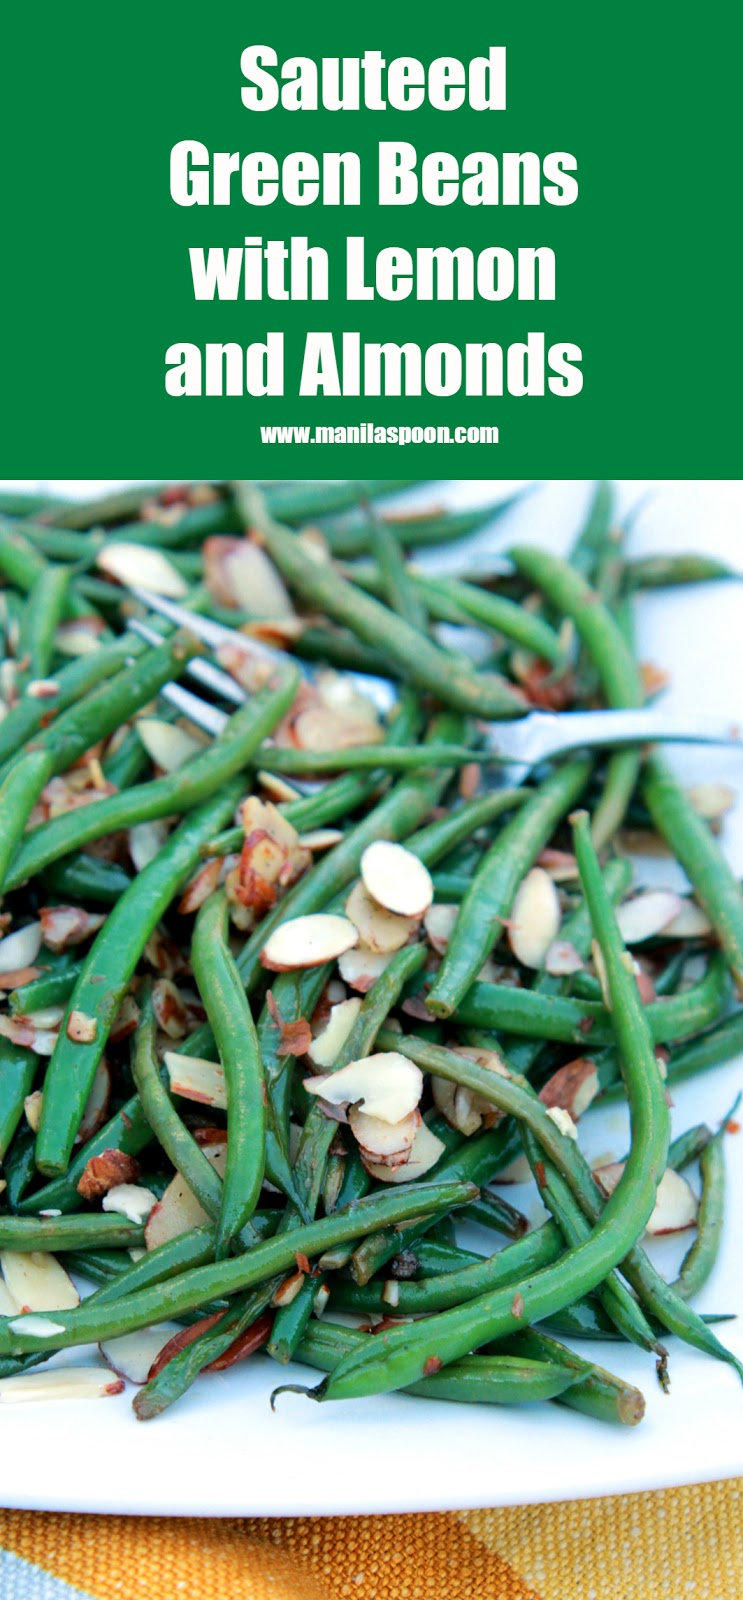 Just 5 minutes to make this tasty side dish full of buttery, lemony goodness and extra crunch from Almonds! Sautéed Green Beans with Lemon and Almonds